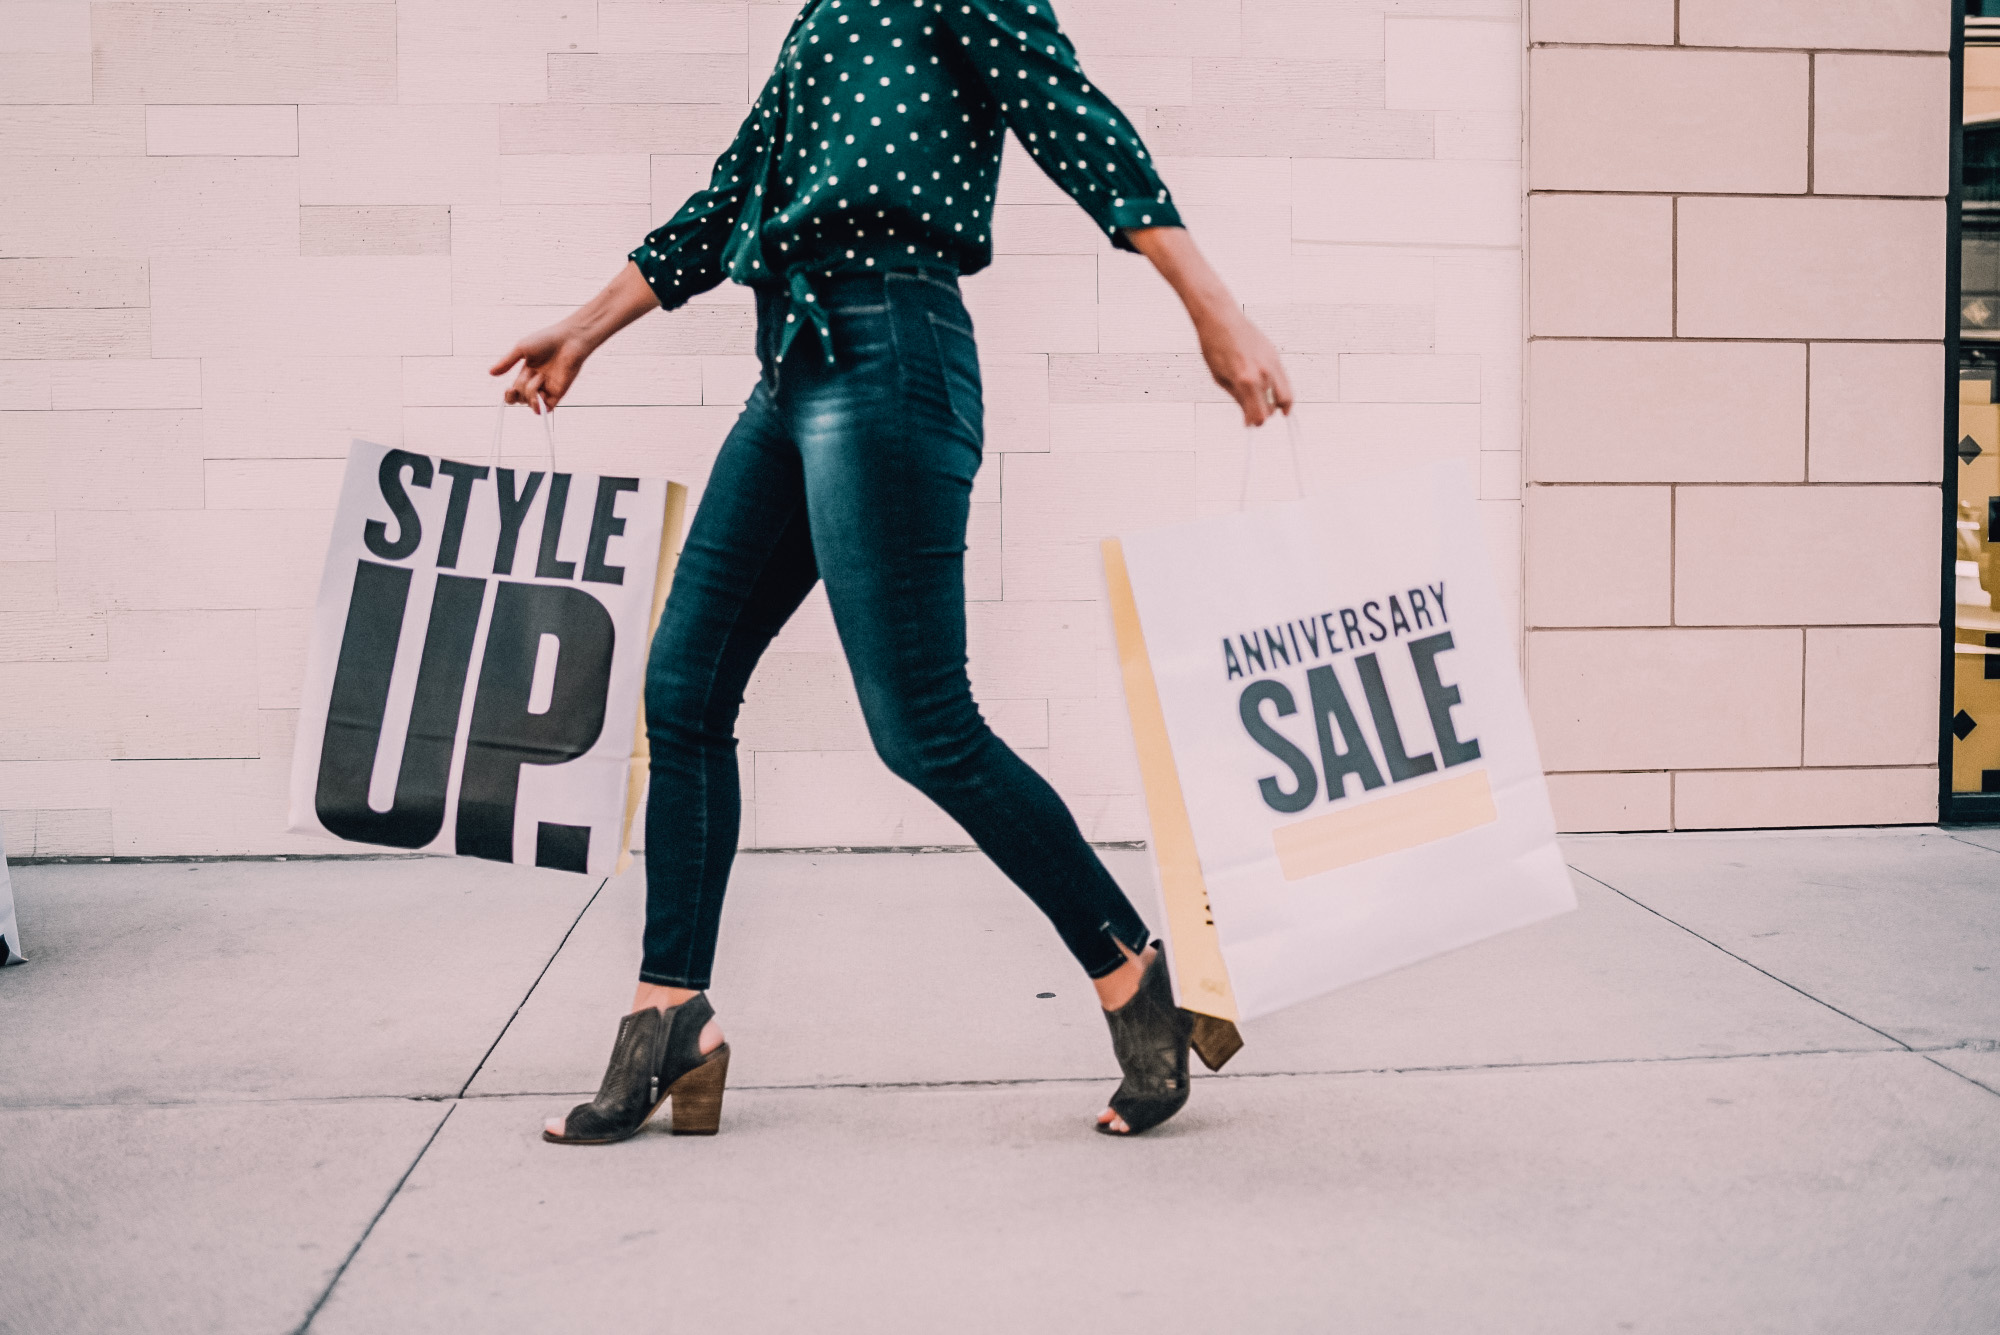 nordstrom anniversary sale 2021 preview and dates